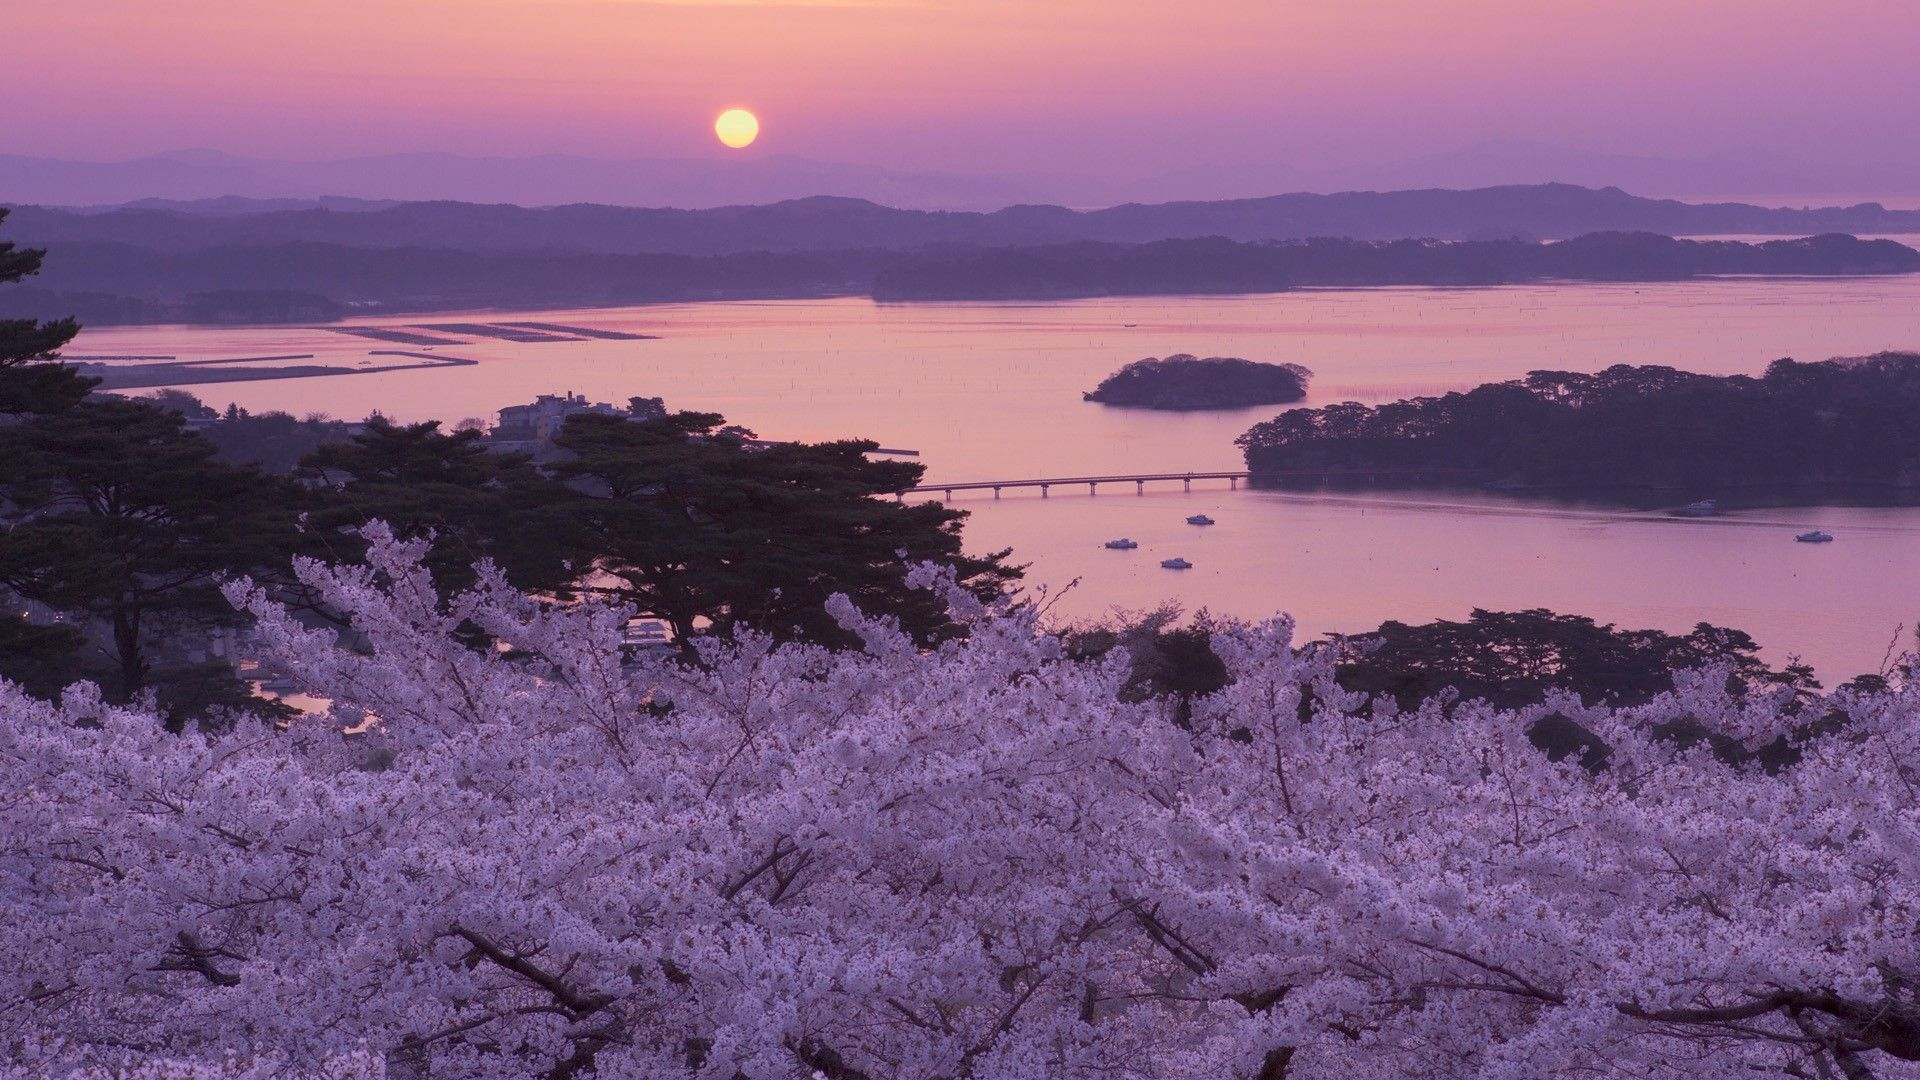 Japan Cherry Blossom Tree Wallpapers - Top Free Japan ...